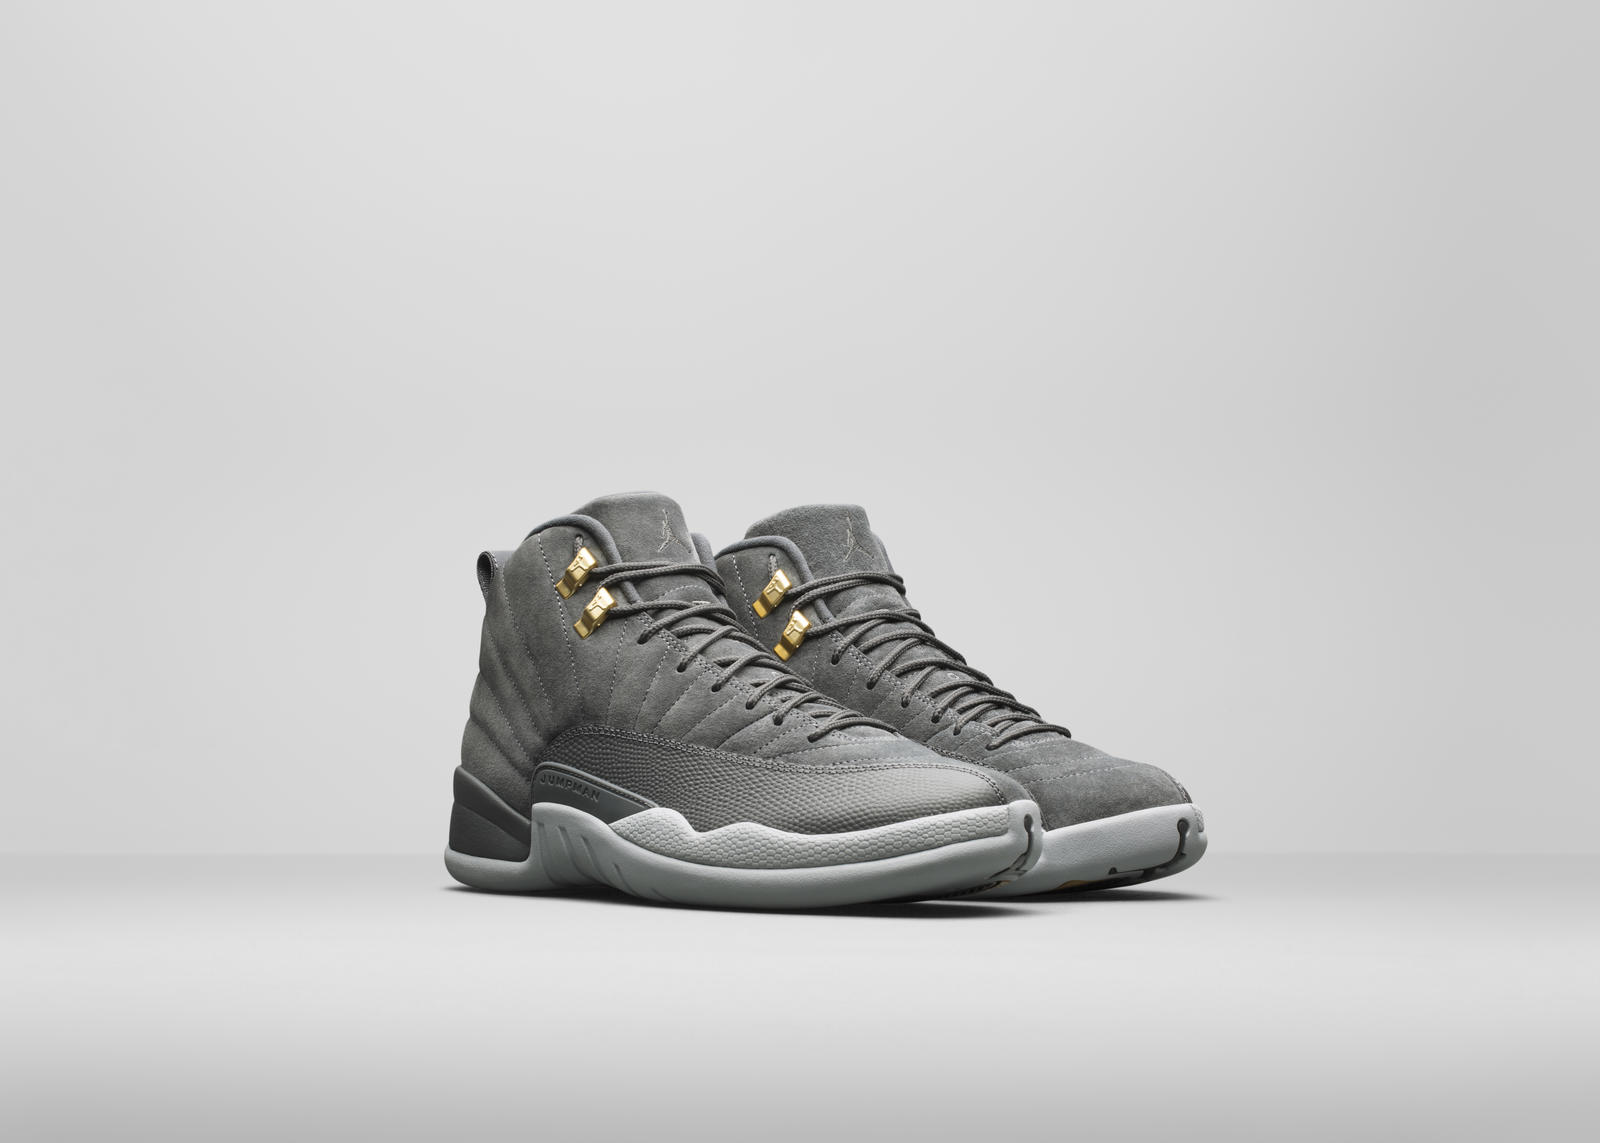 buy popular 716cd a72d6 Jordan Brand Unveils Retro Lineup for the Holiday Season ...